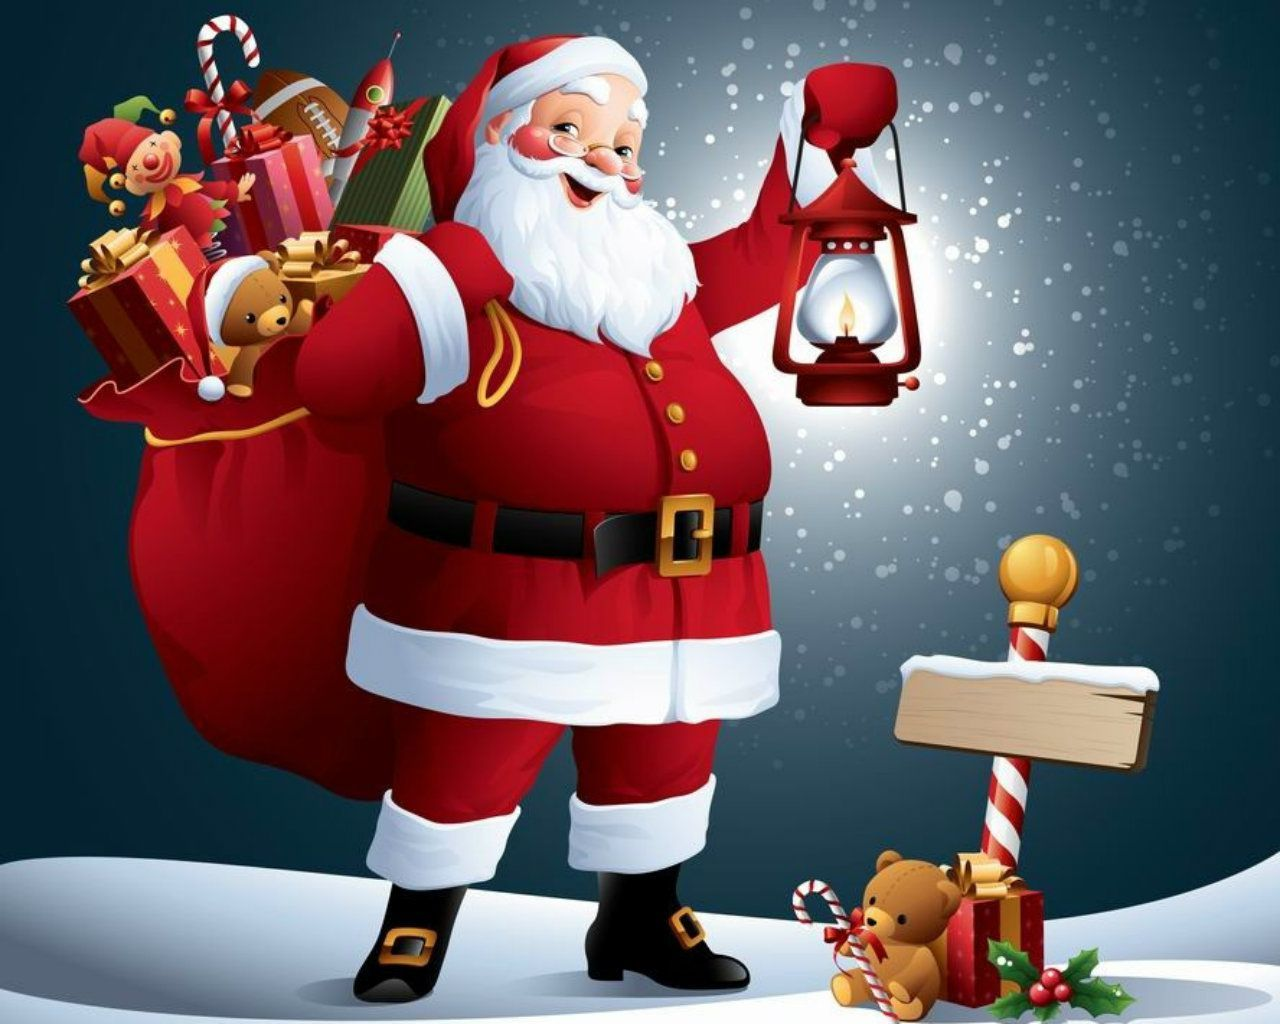 Merry Christmas 2021 : Merry Christmas wishes, quotes, greetings, and sms